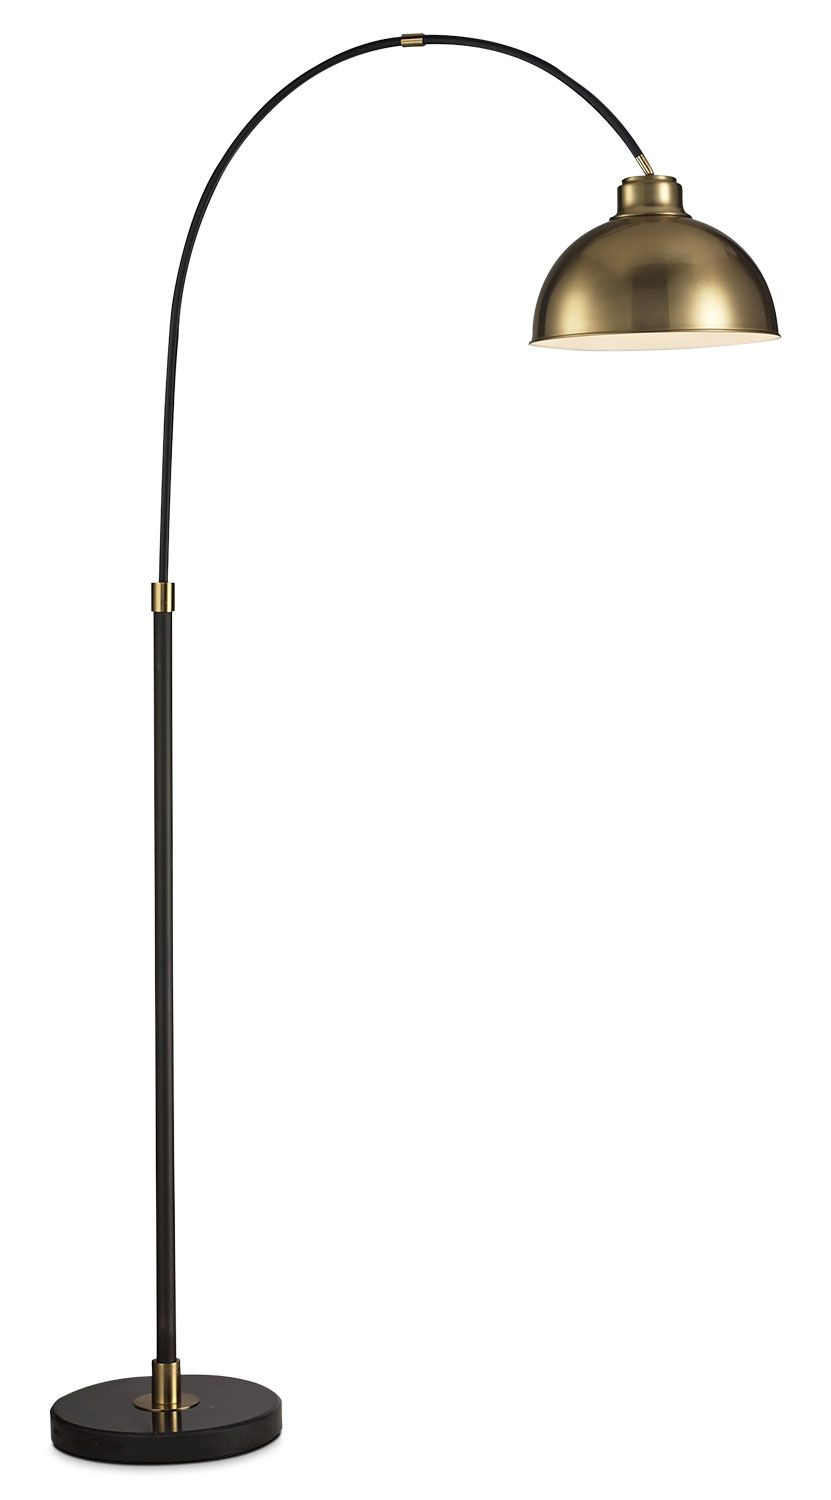 Add A Little Old Fashioned Feel To Your Space With This Arc Floor Lamp The Black Base Features Gold Accents Gold Floor Lamp Arc Floor Lamps Modern Floor Lamps